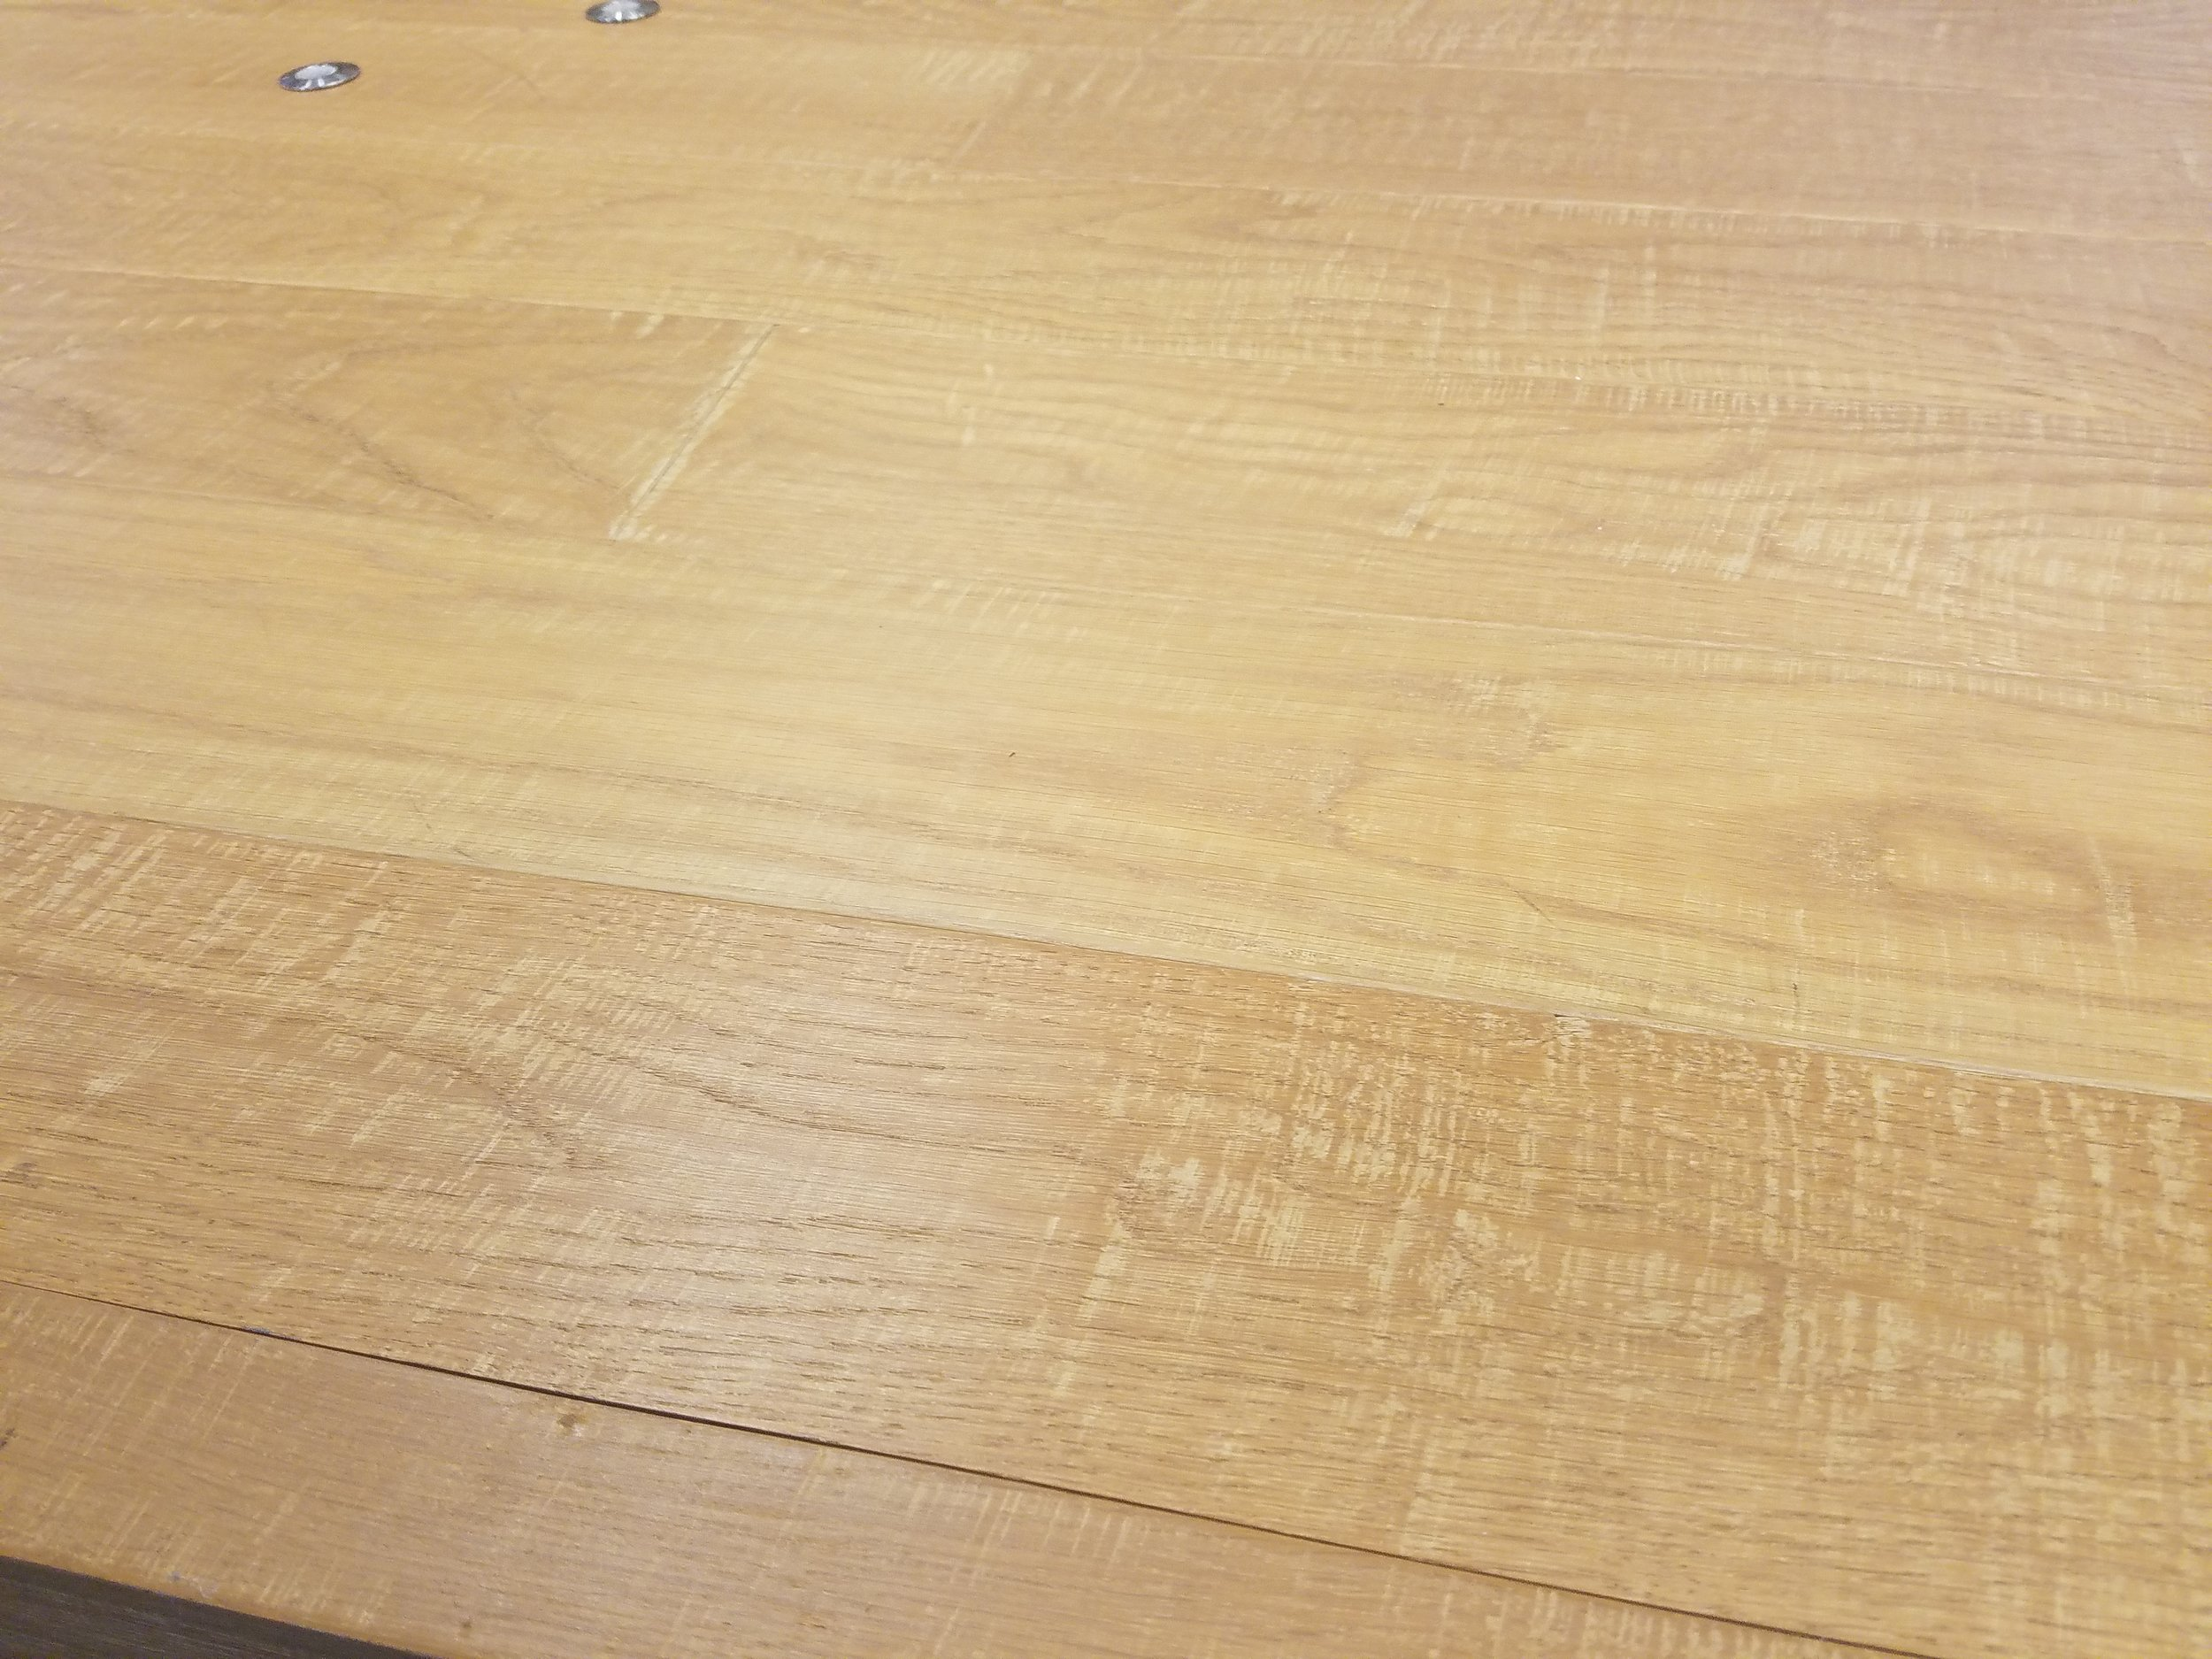 the flooring was hand-distressed and custom finished ot match the clients' design scheme